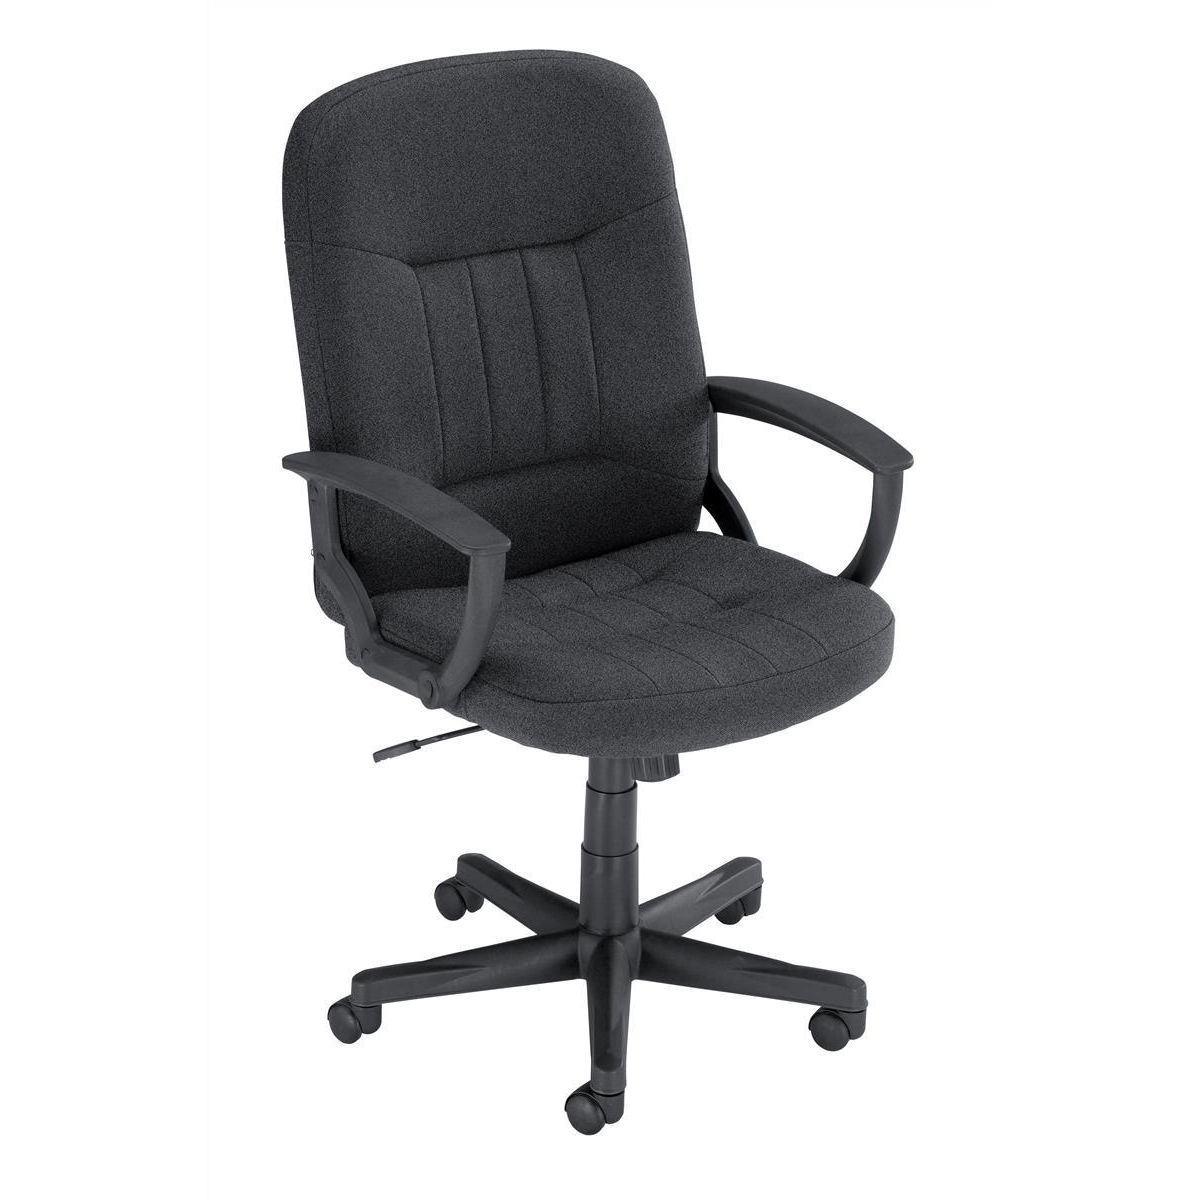 Trexus County Manager Chair Charcoal 520x420x420-520mm Ref 517067